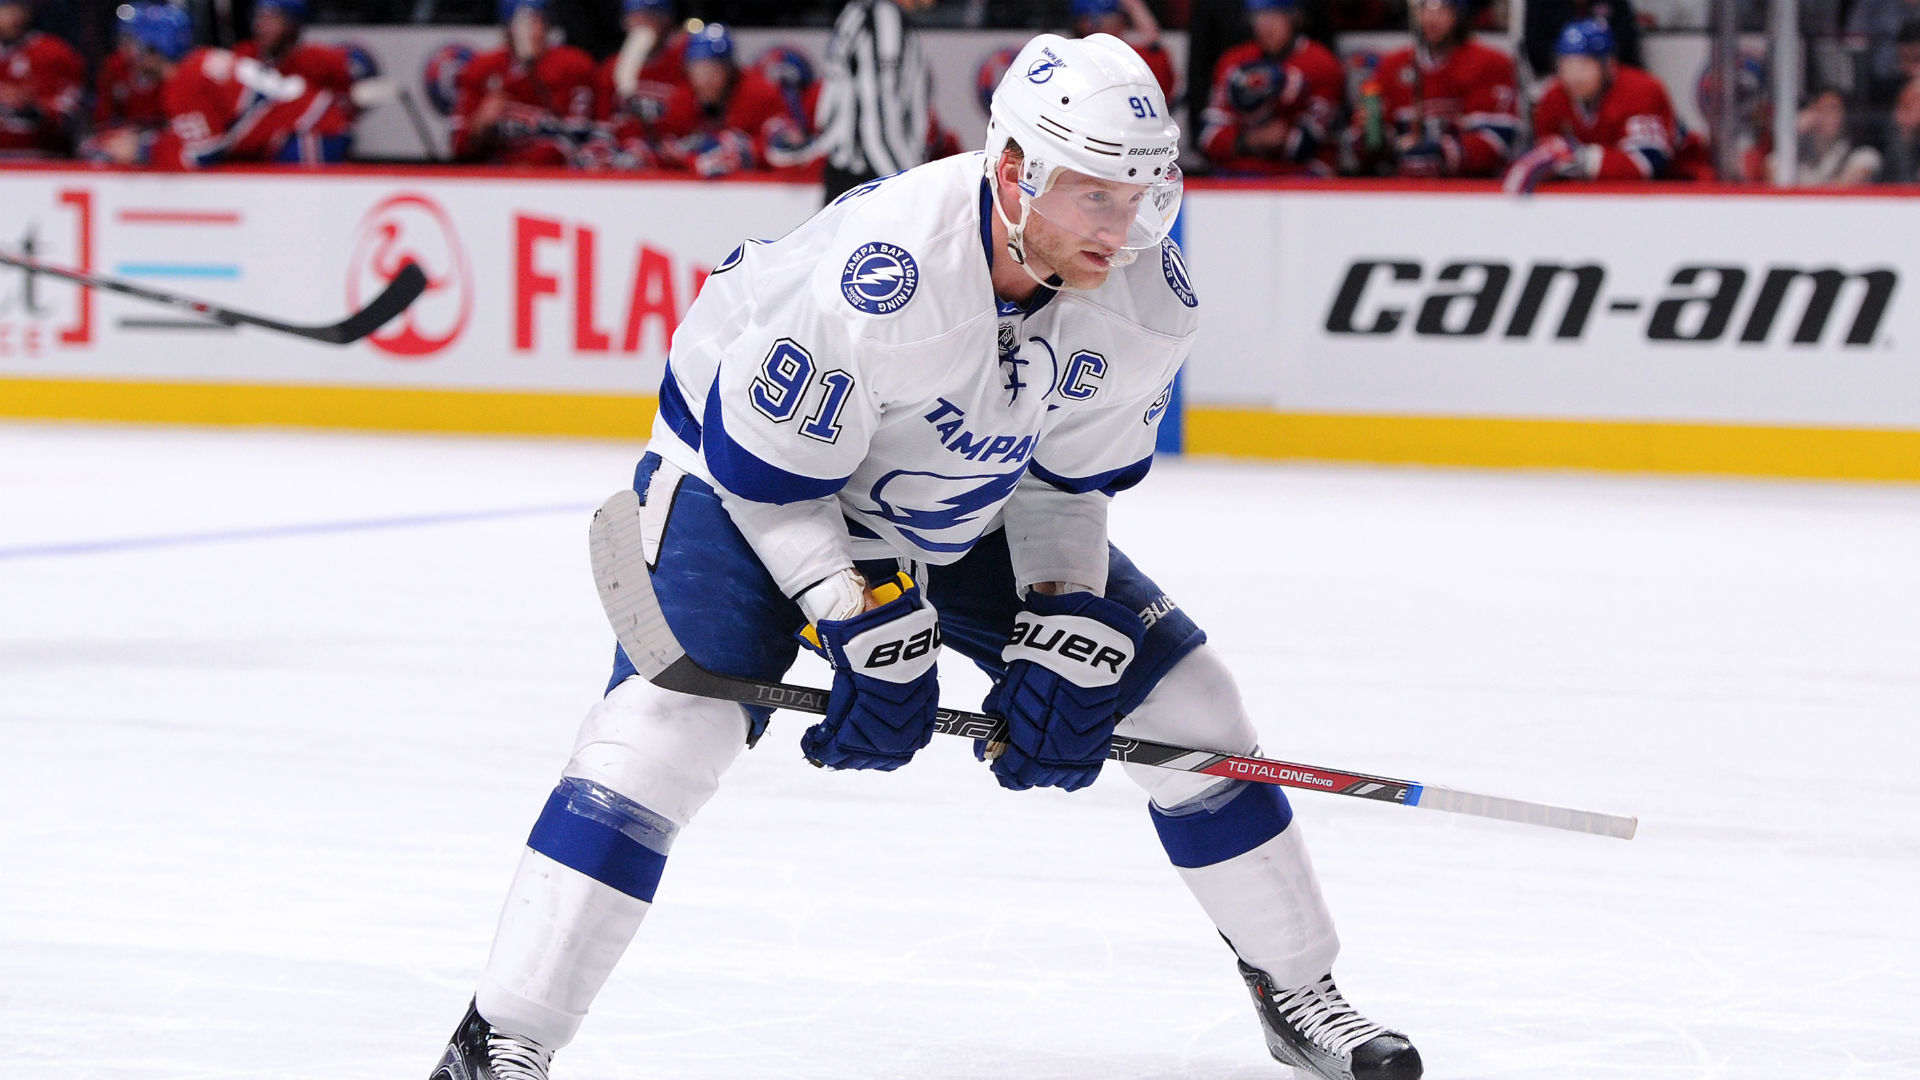 NHL playoff odds, betting lines and totals – Lightning a big favorite in Game 7 vs. Red Wings